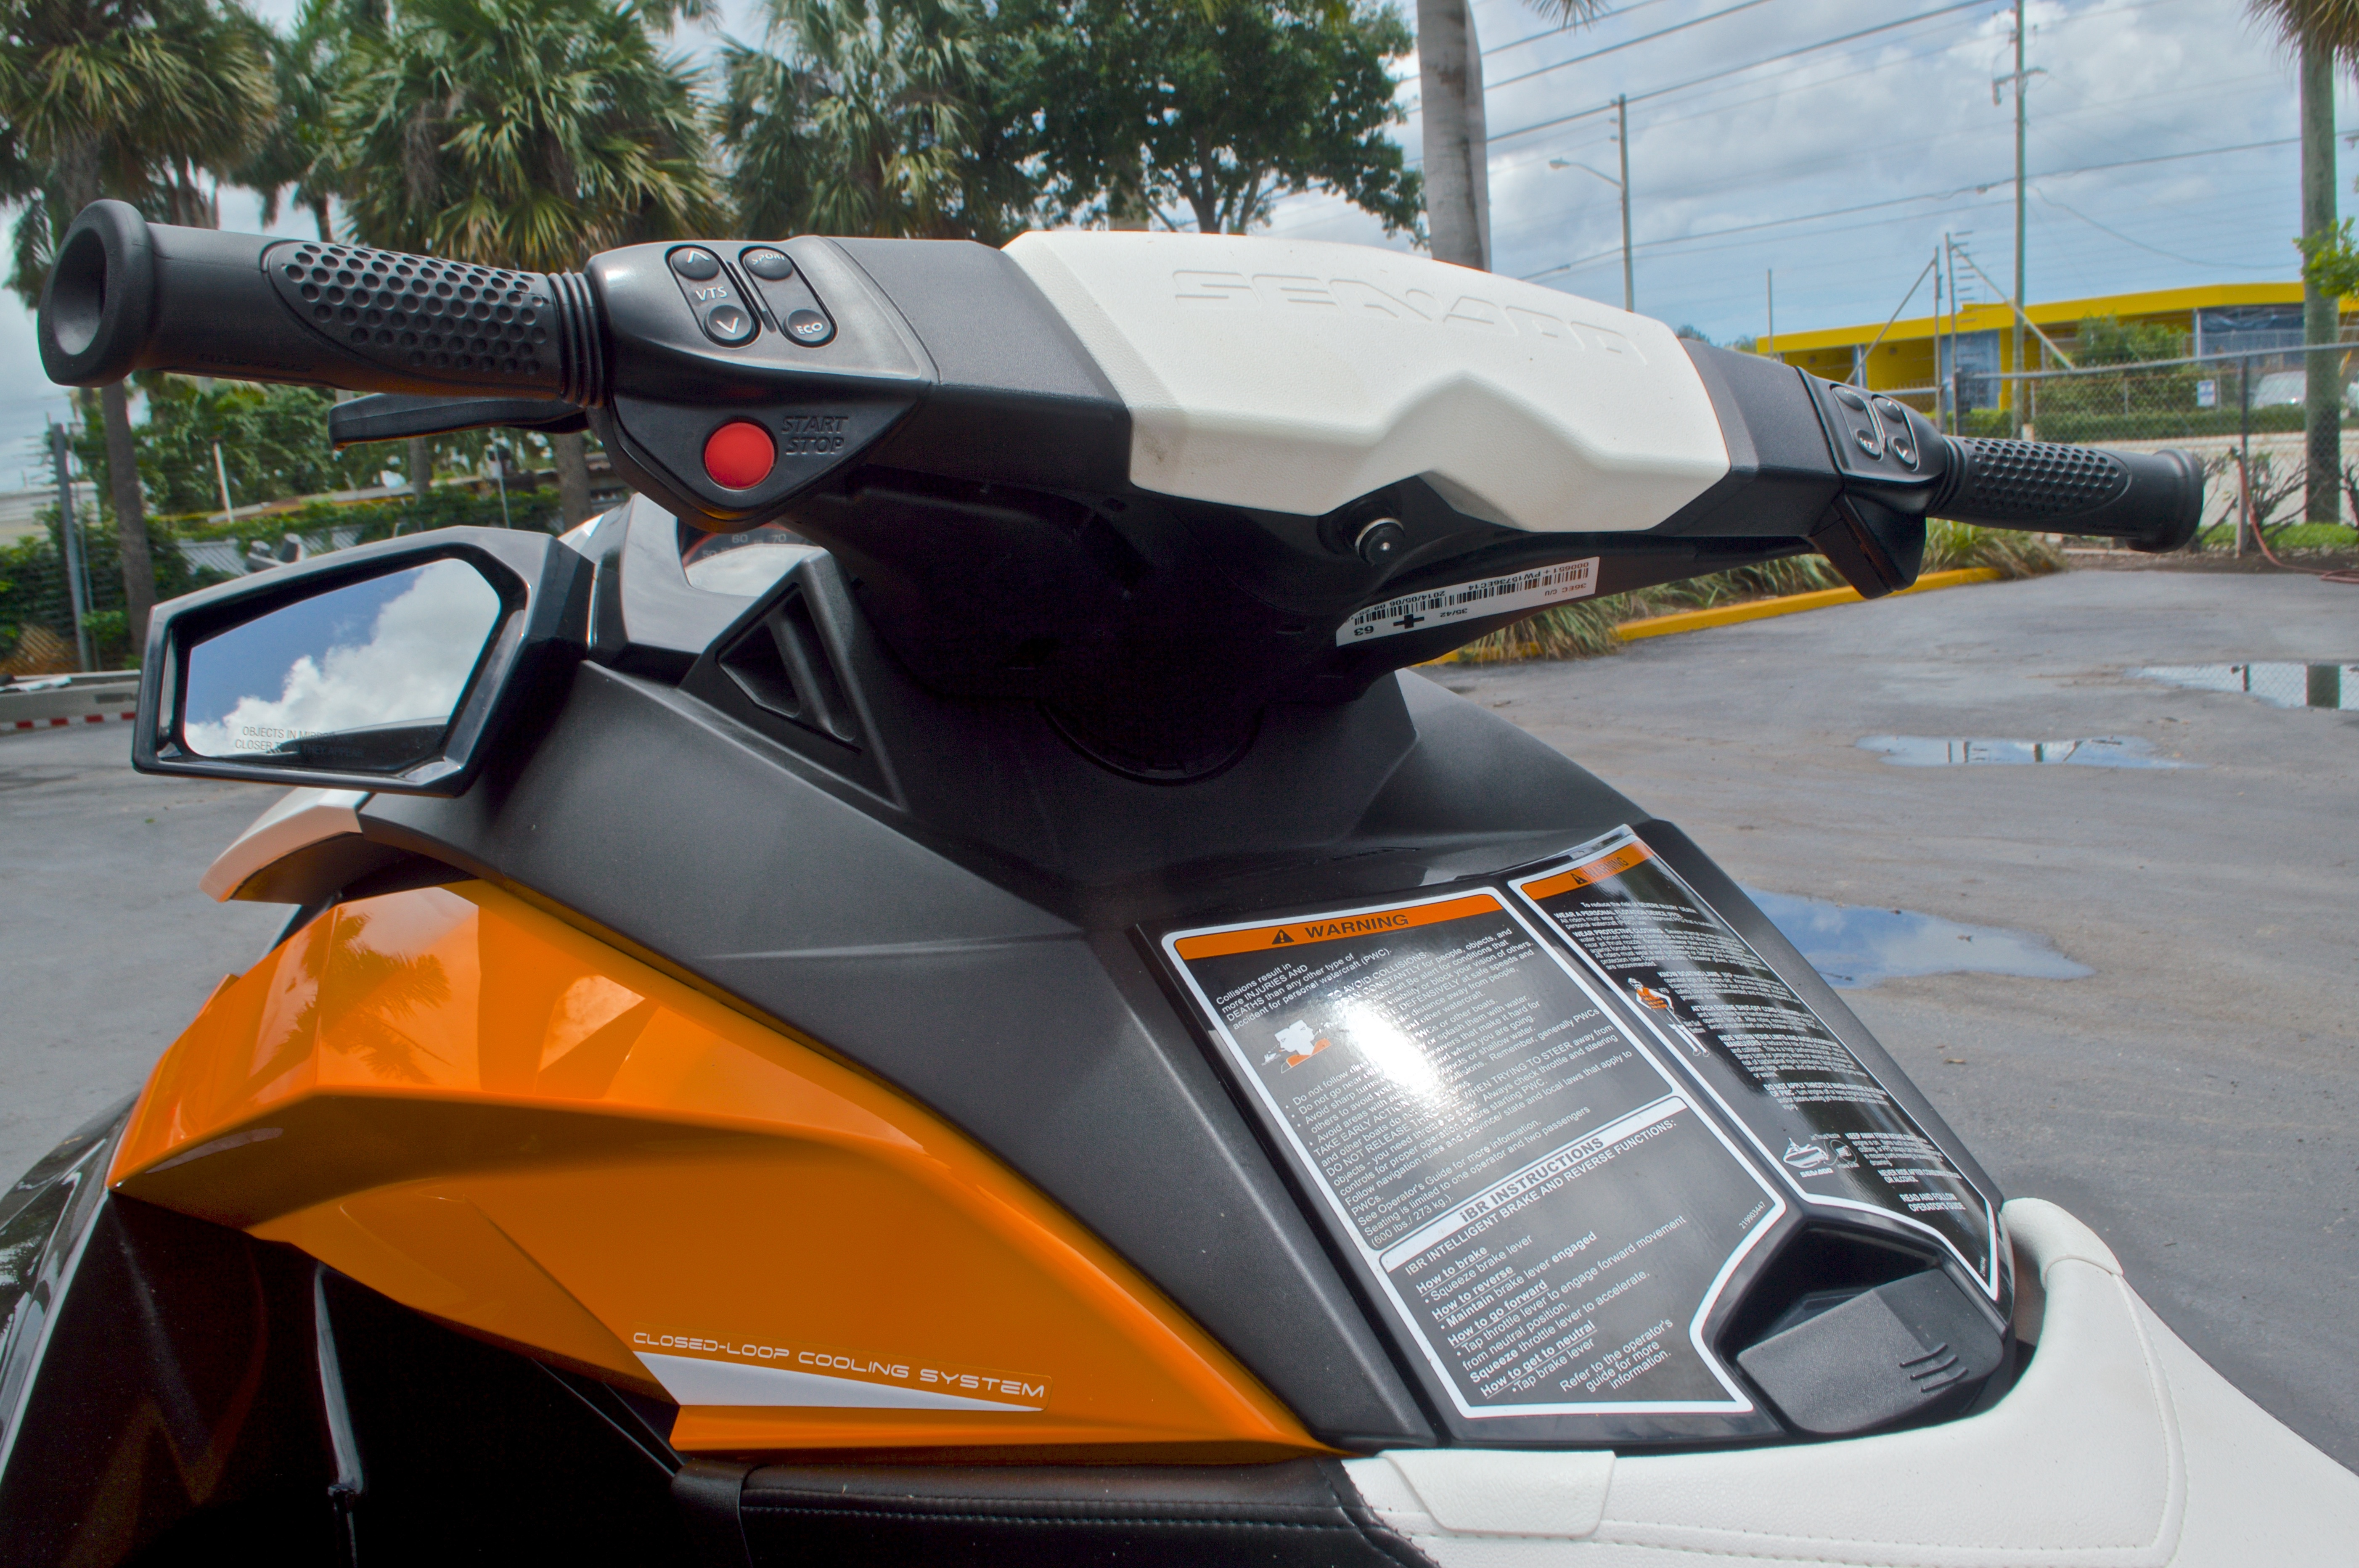 Thumbnail 13 for Used 2014 Sea-Doo GTR 215 boat for sale in West Palm Beach, FL